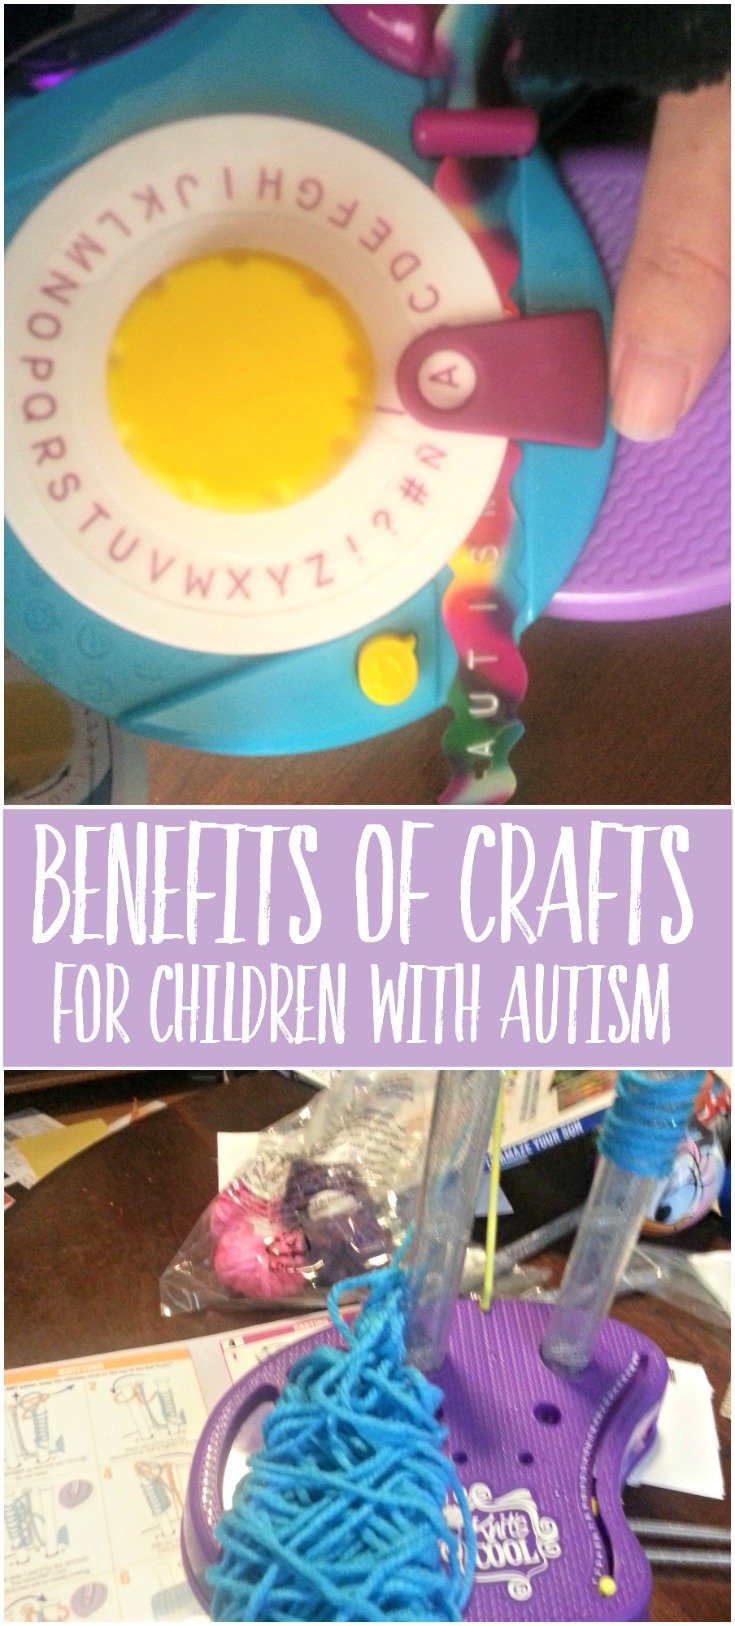 Crafts can provide many benefits for children of all abilities. #IMACoolMaker #CG @Spin_Master